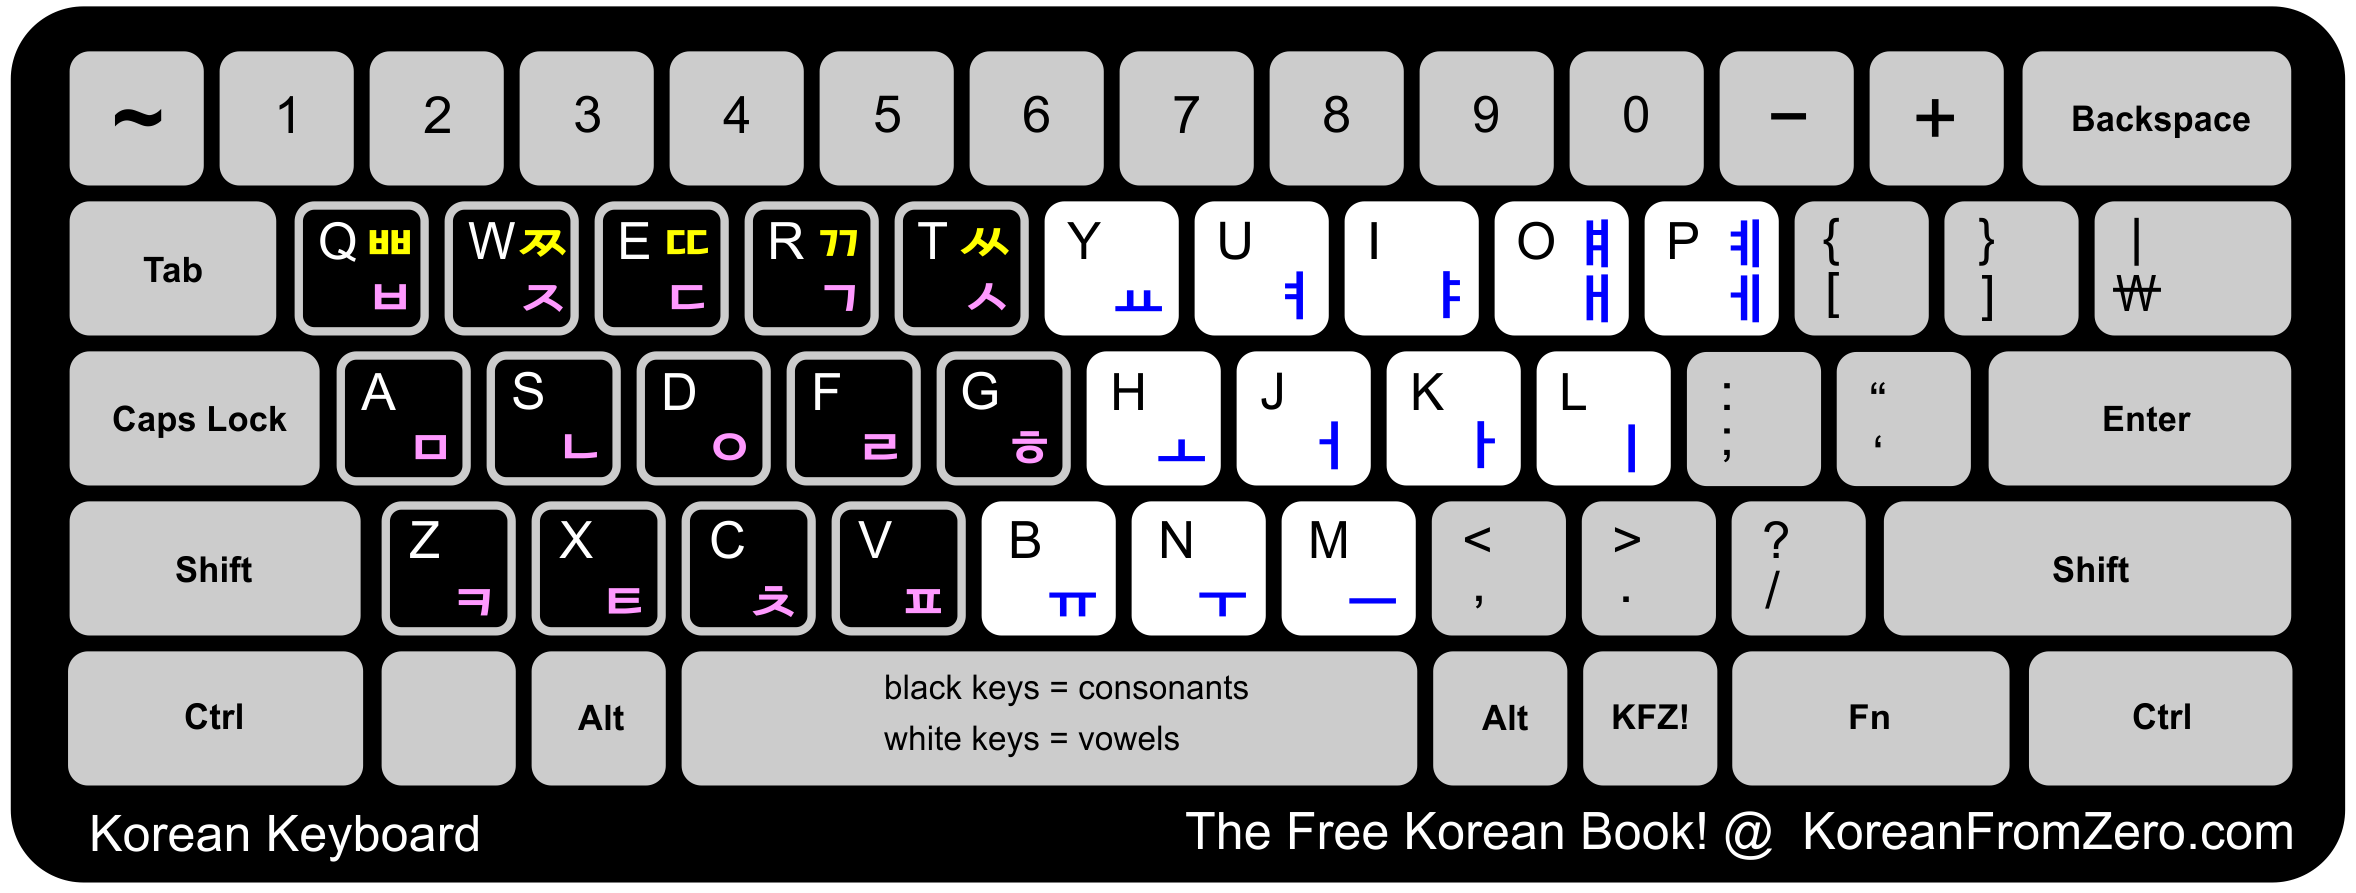 Korean Keyboard Layout